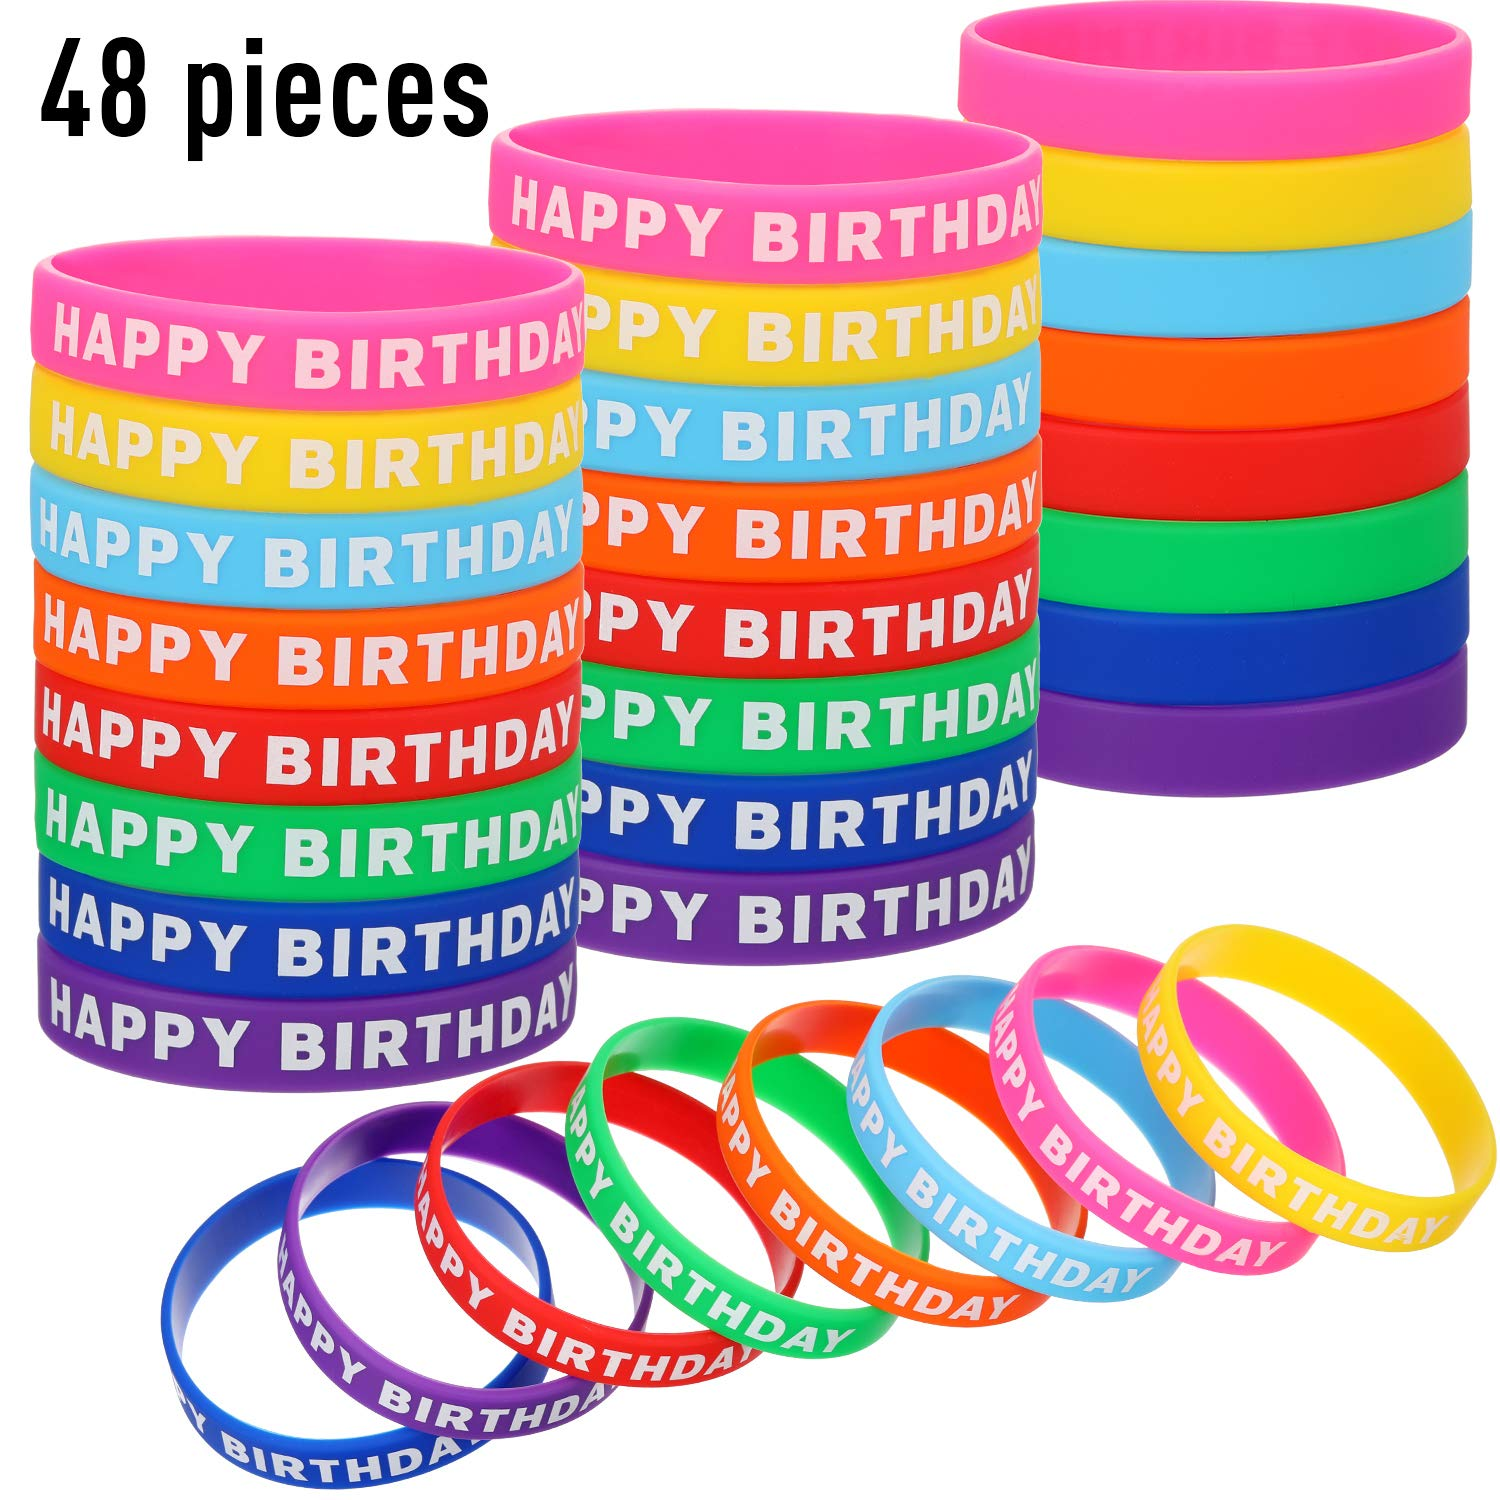 48 Pieces Happy Birthday Bracelets Silicone Stretch Wristbands Colored Rubber Bracelets for Birthday Party Supplies, 8 Colors by Gejoy